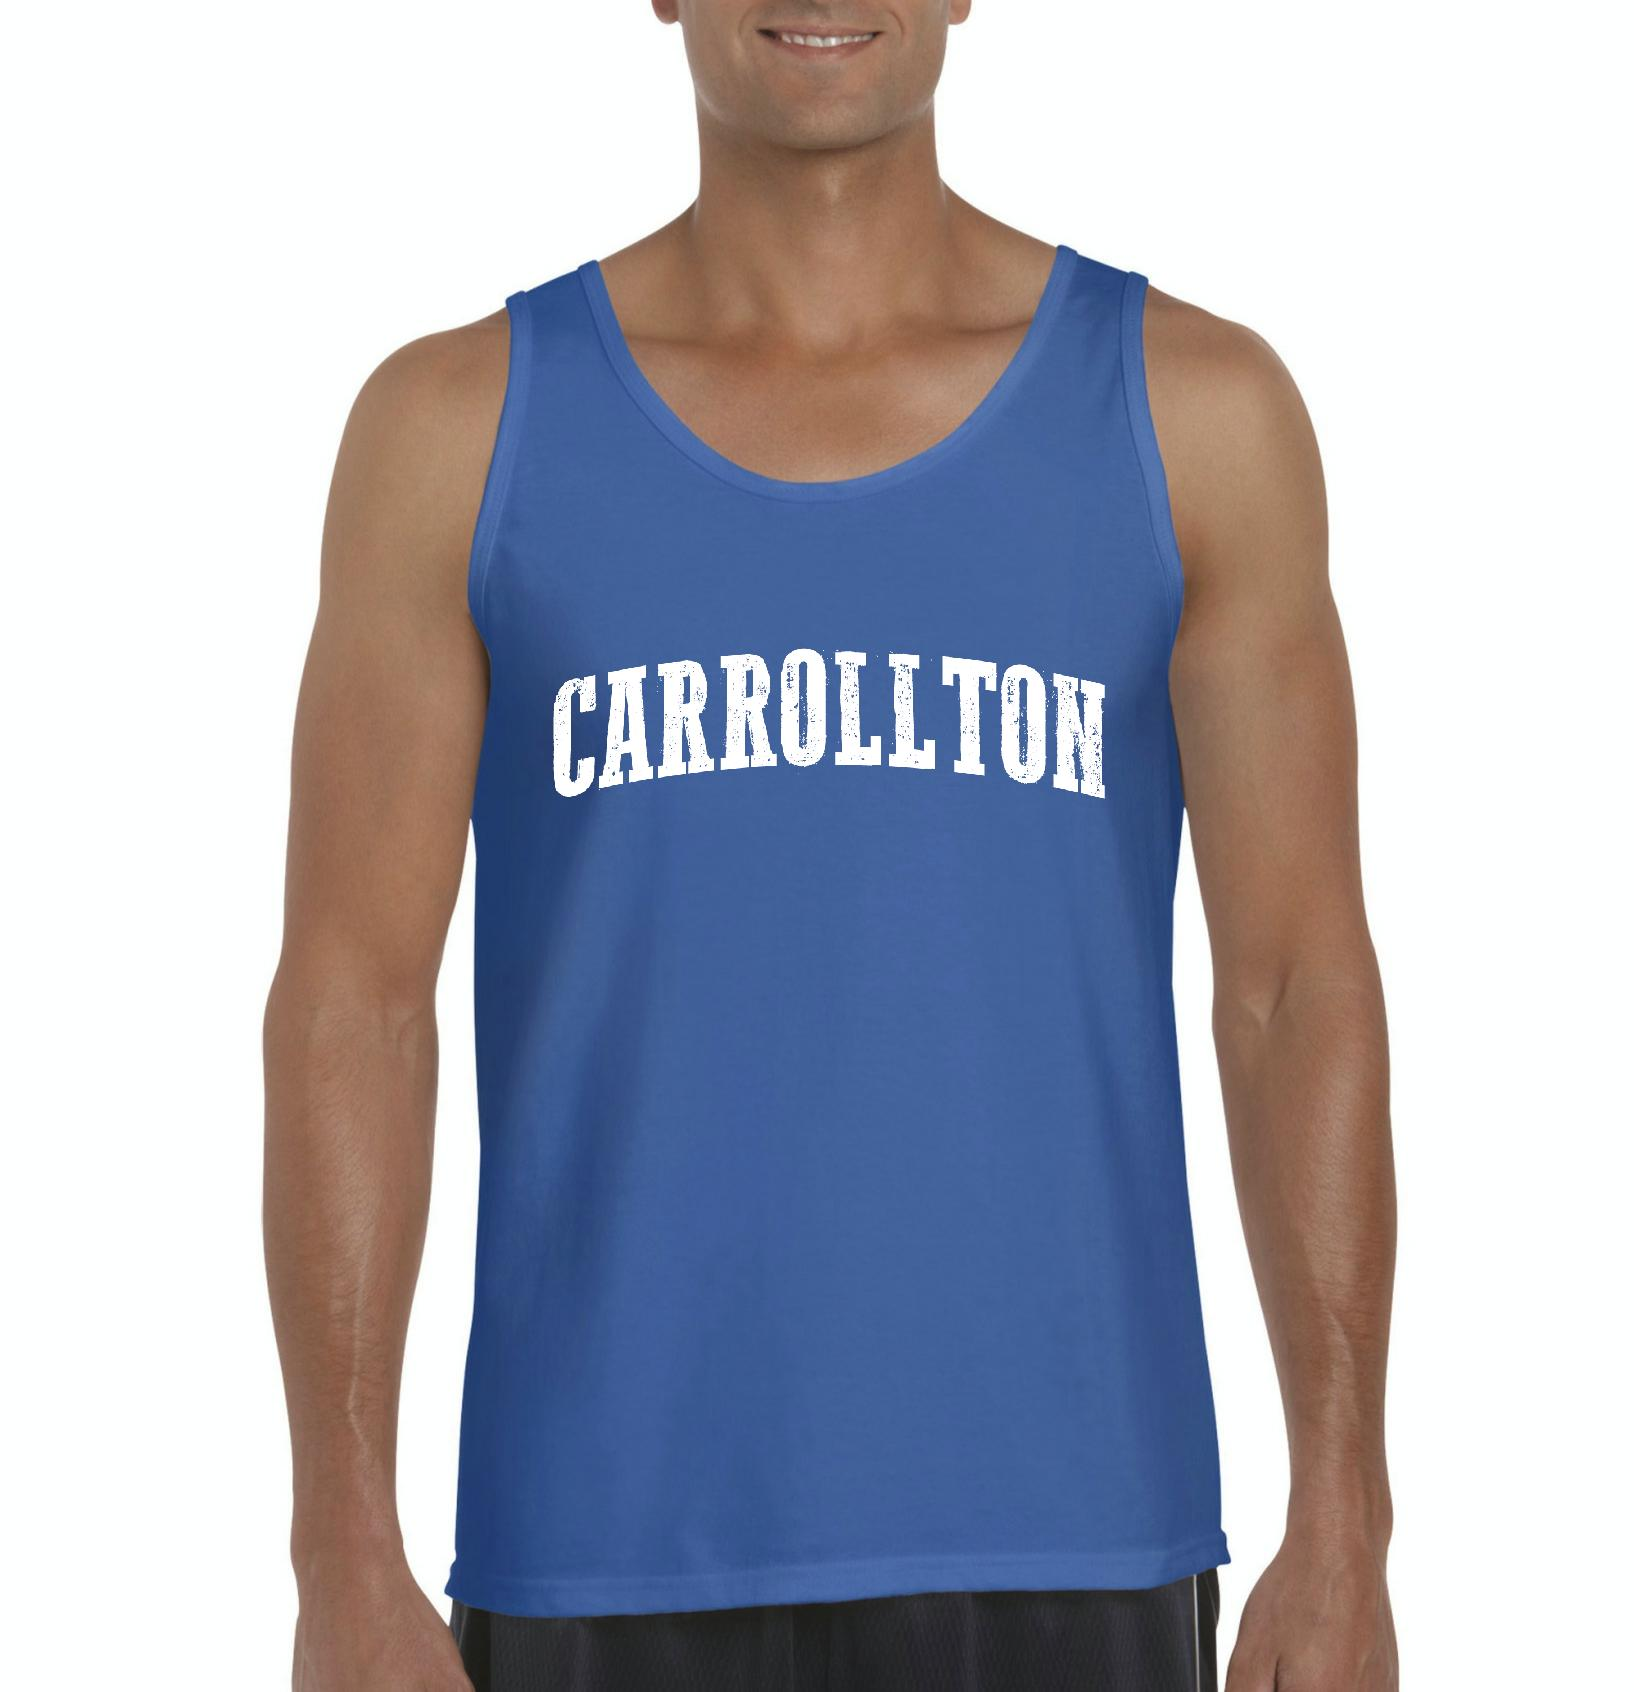 Carrollton TX Texas Flag Houston Map Longhorns Bobcats Home Texas State University Mens Tanks